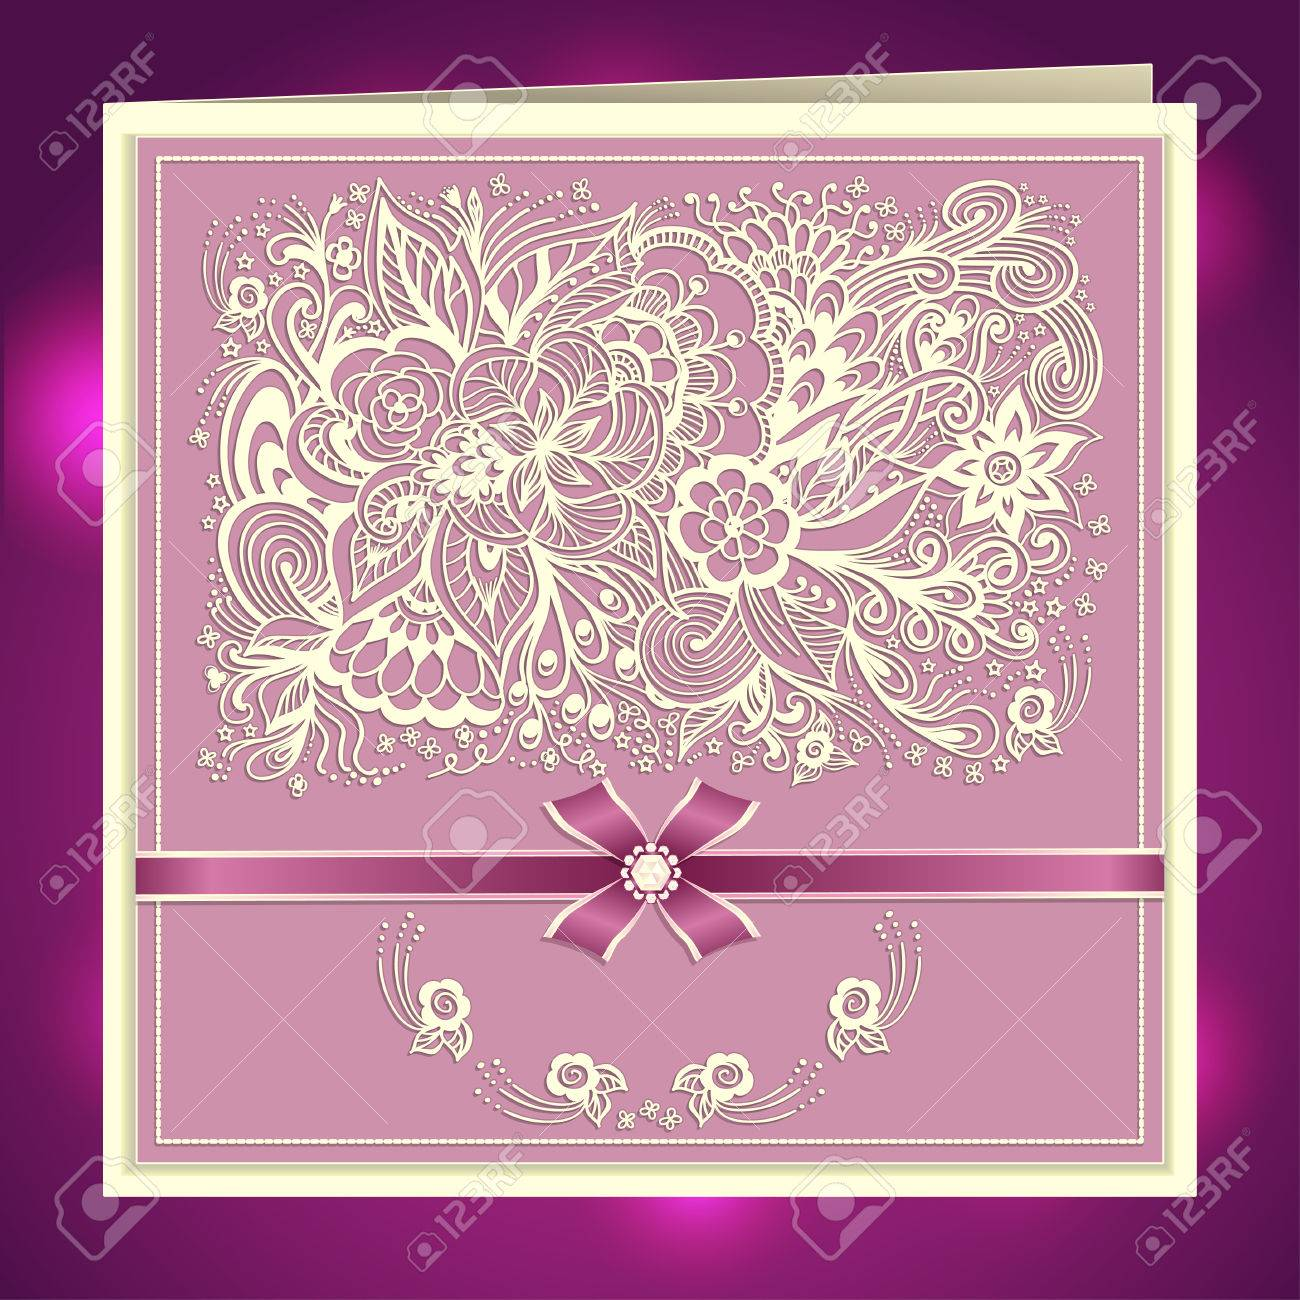 Wedding invitation with zen doodle flowers bow ribbon rhinestones vector wedding invitation with zen doodle flowers bow ribbon rhinestones in lilac pink colors or creative post card stopboris Image collections